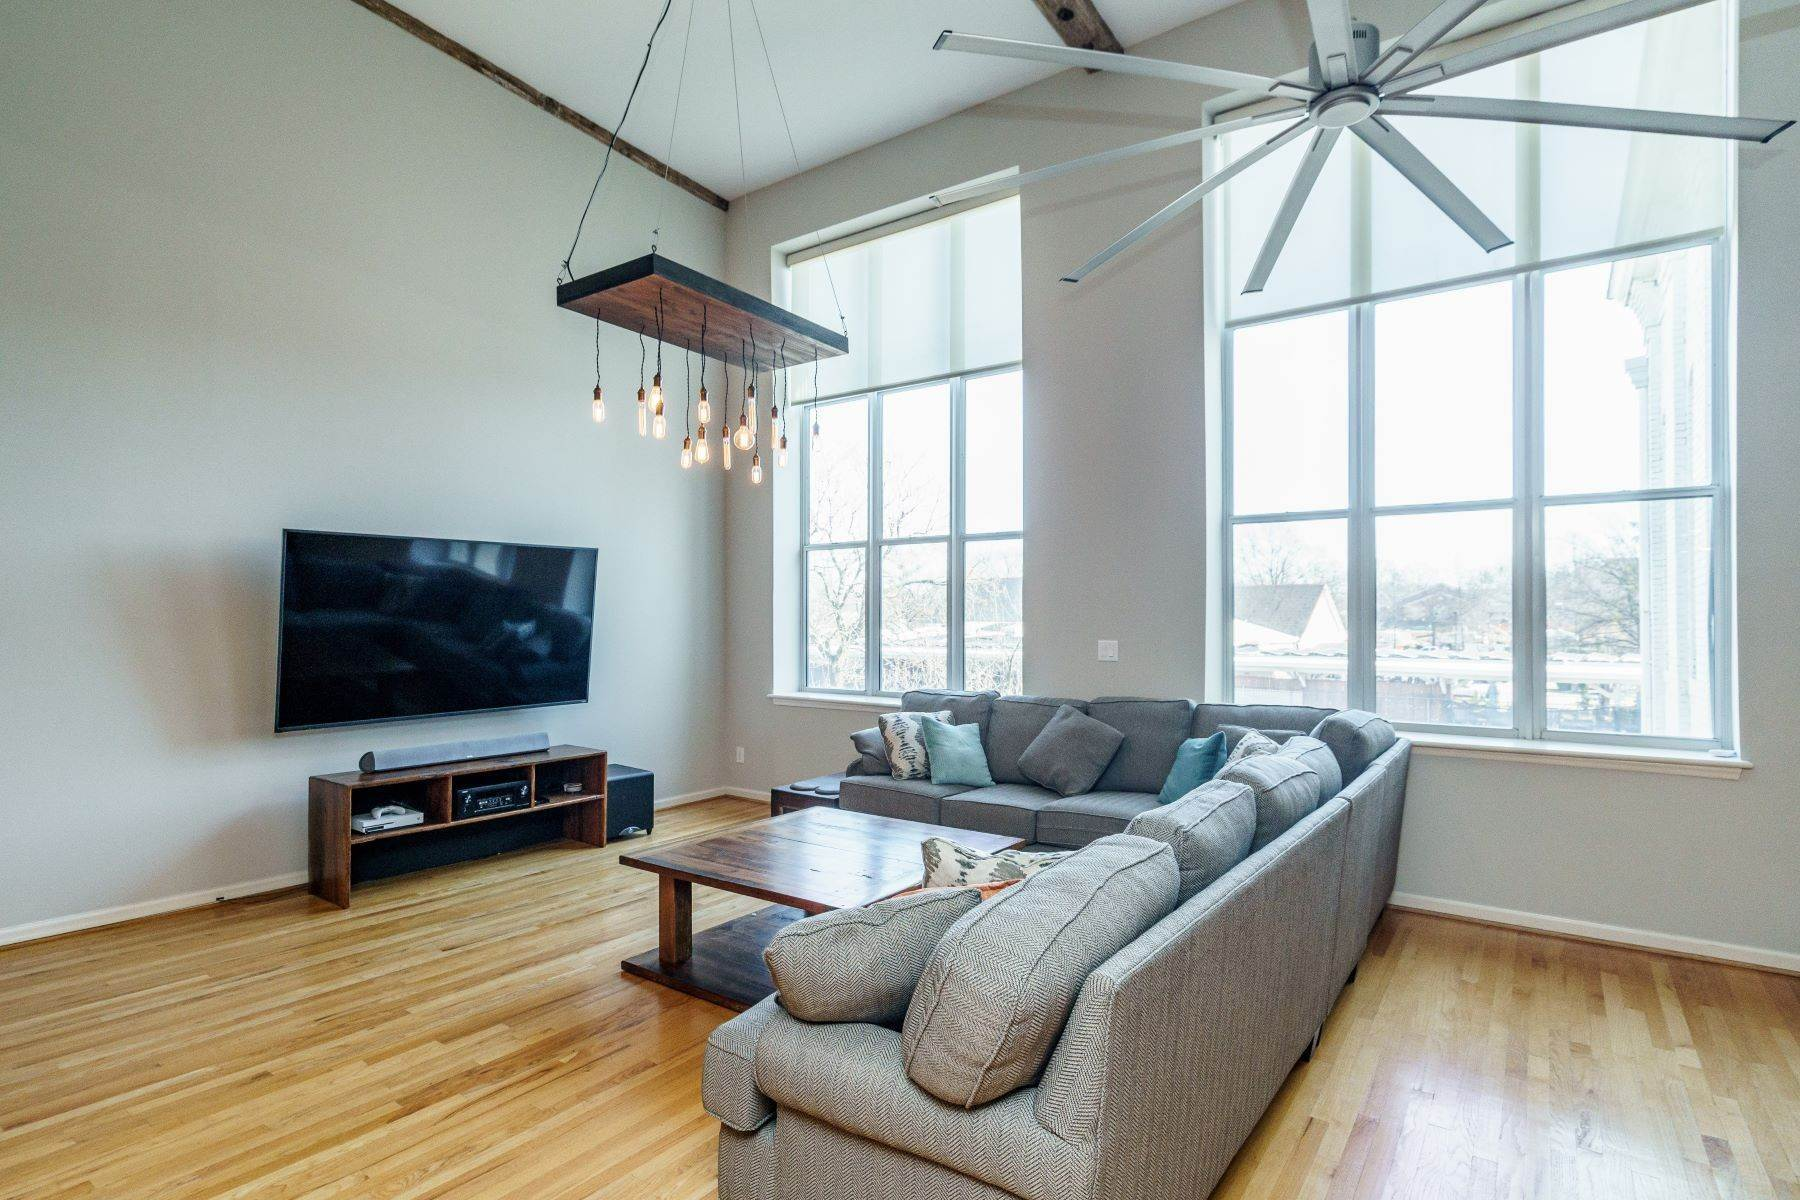 8. Single Family Homes for Sale at Large Industrial Loft in The Cotton Mill 614 Capital Boulevard Unit 225 Raleigh, North Carolina 27603 United States